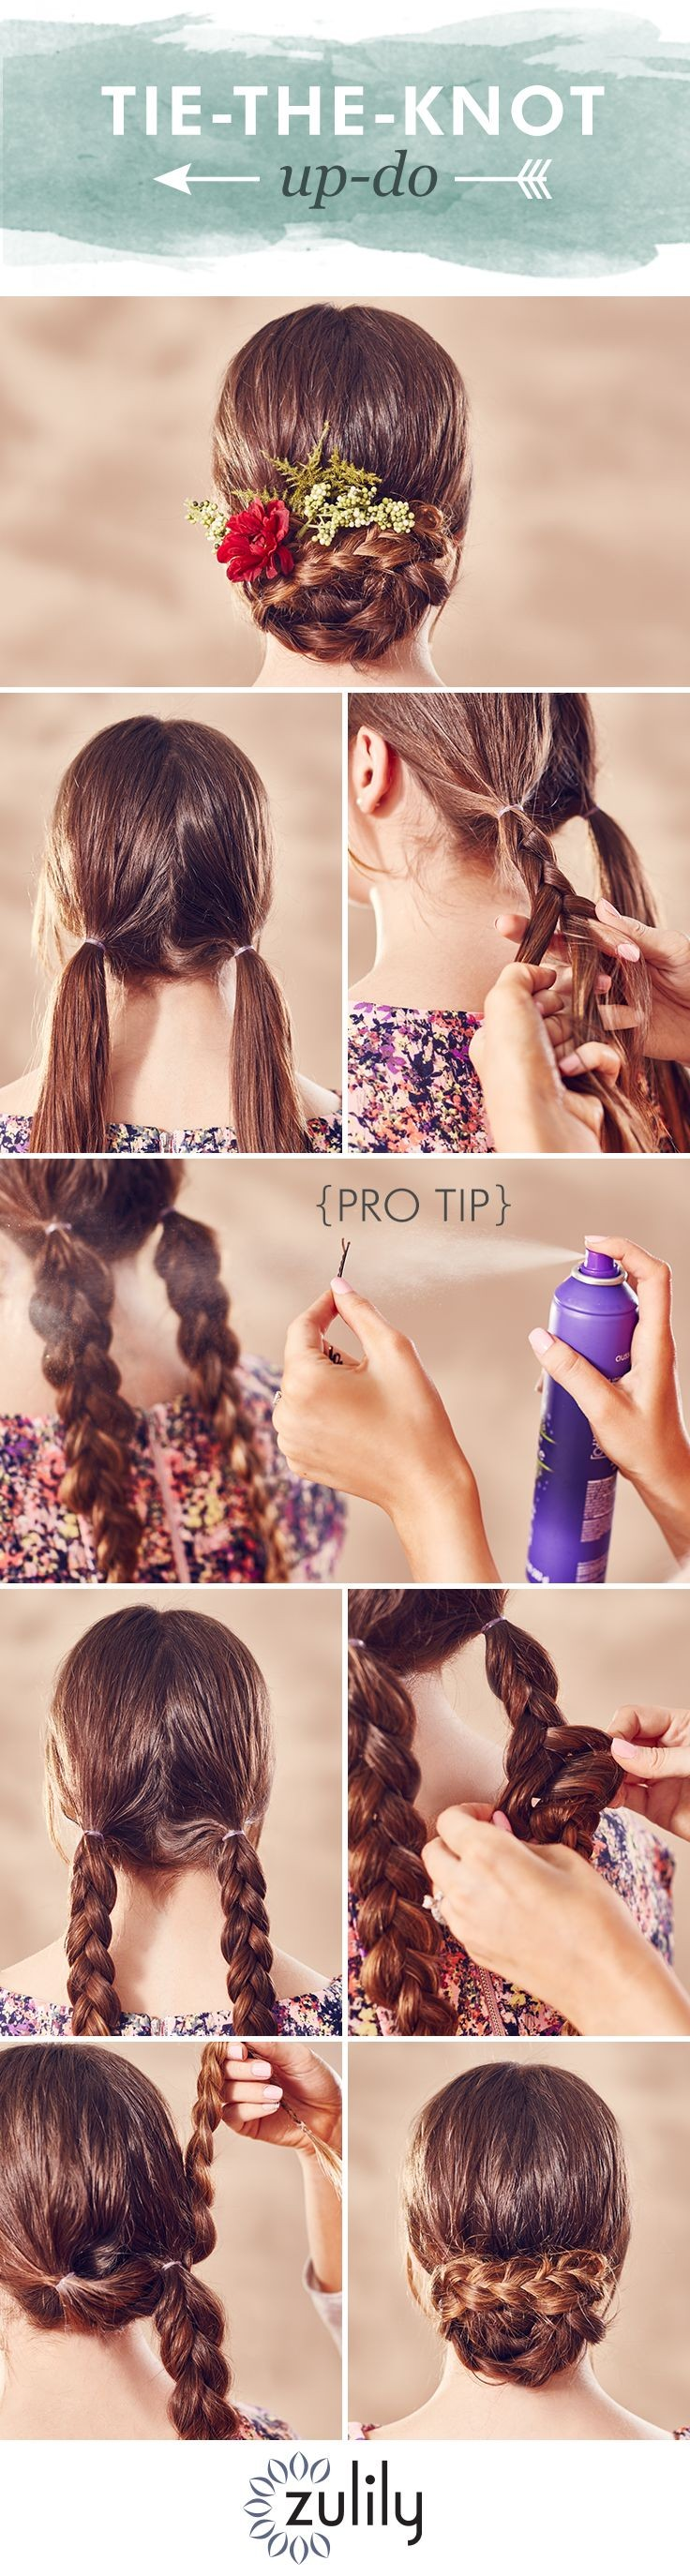 Wear this beautiful braided up-do to all your summ...